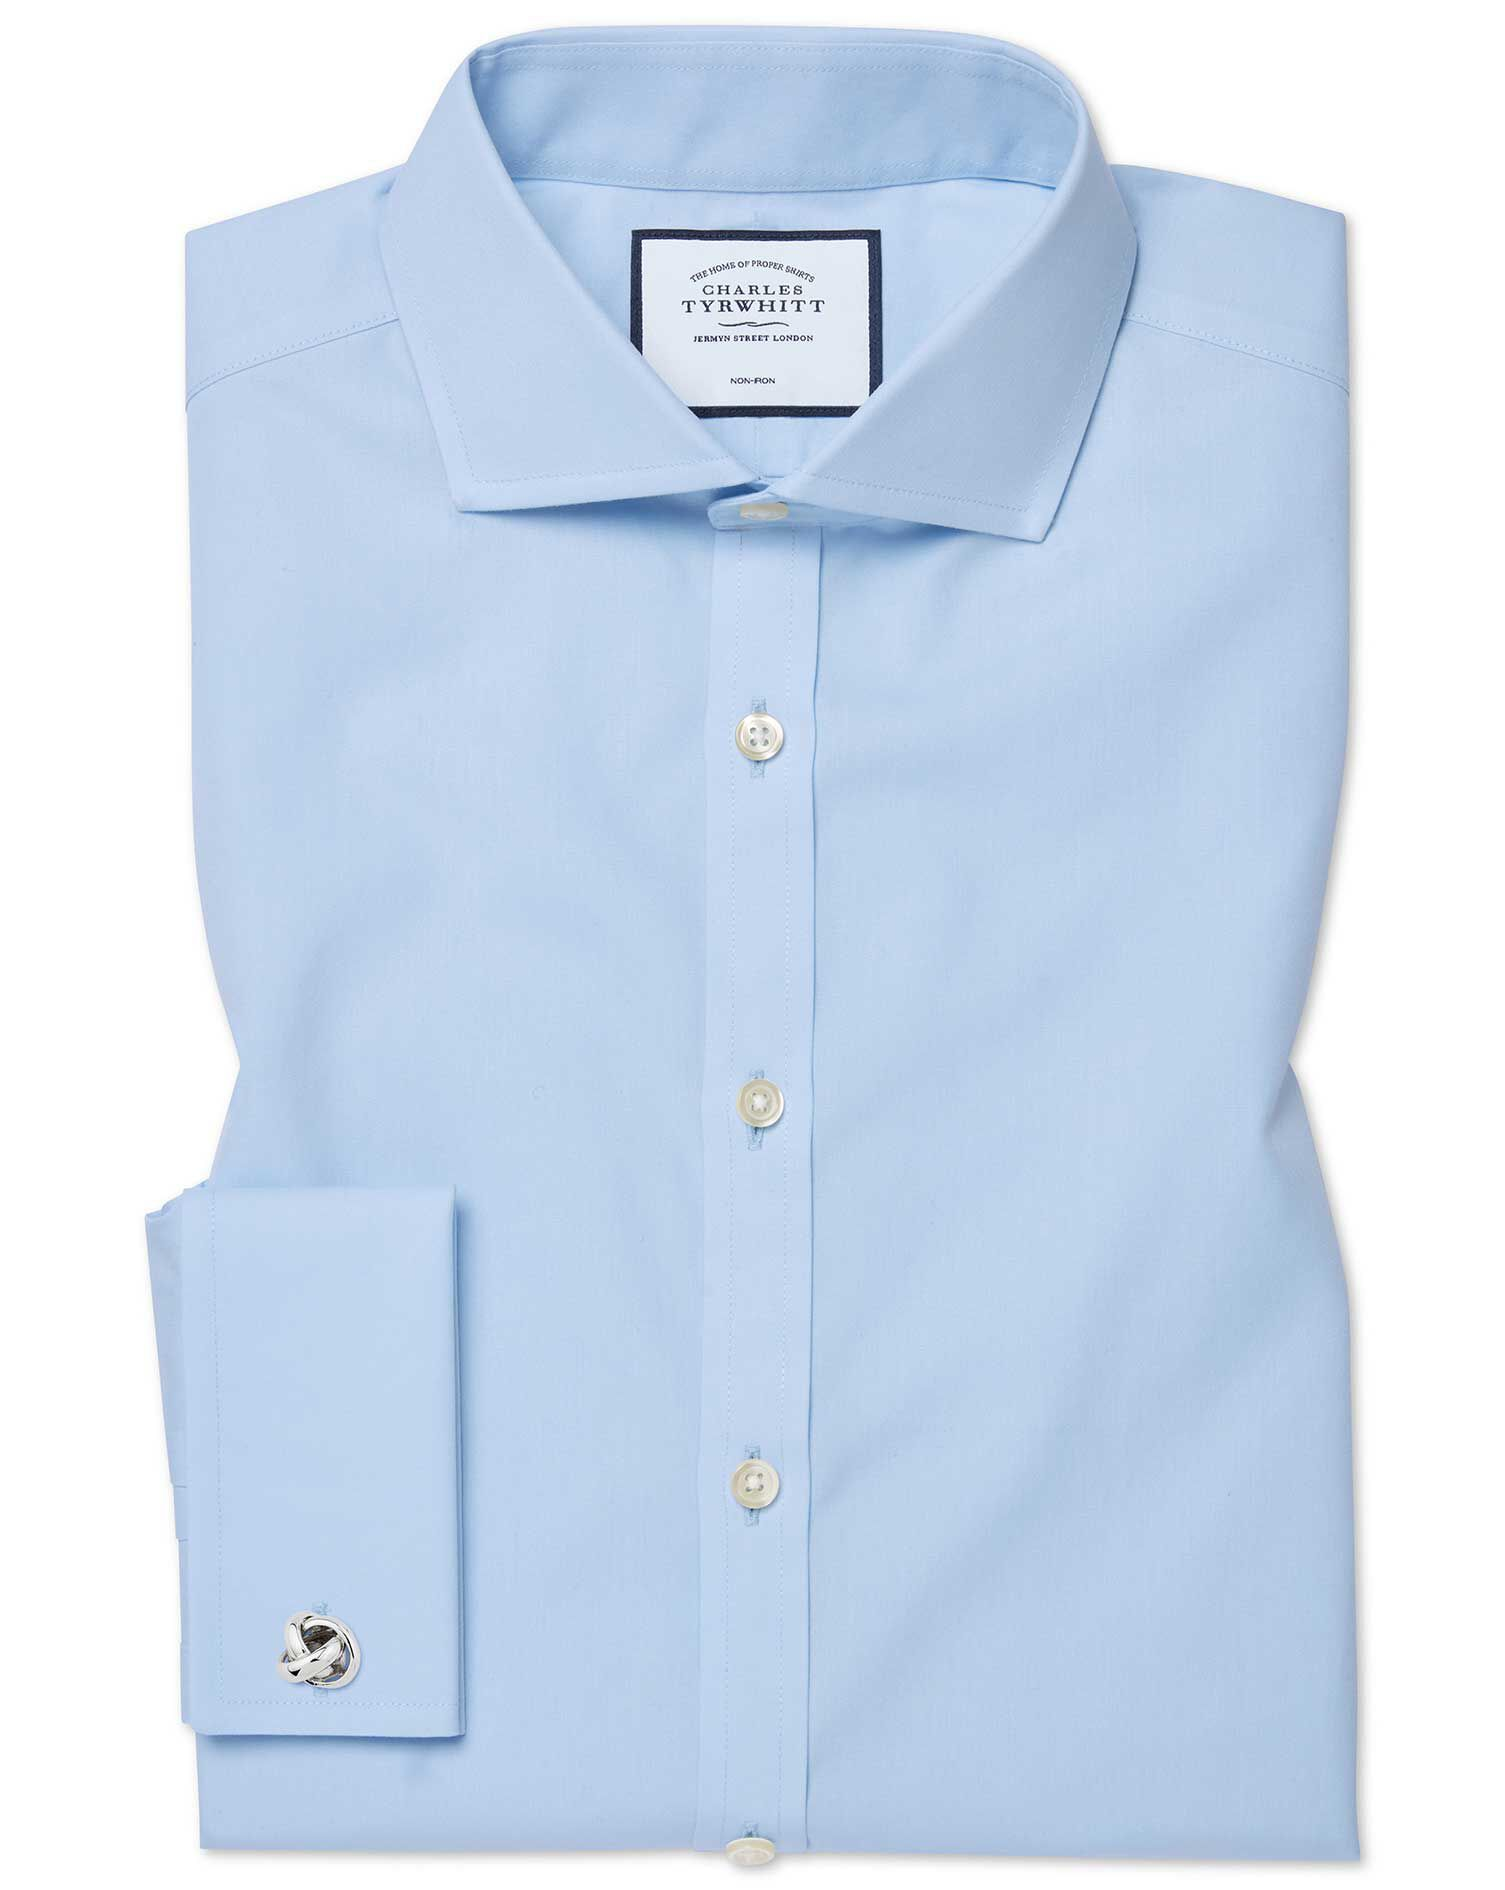 Extra Slim Fit Cutaway Non-Iron Twill Sky Blue Cotton Formal Shirt Single Cuff Size 17.5/35 by Charl